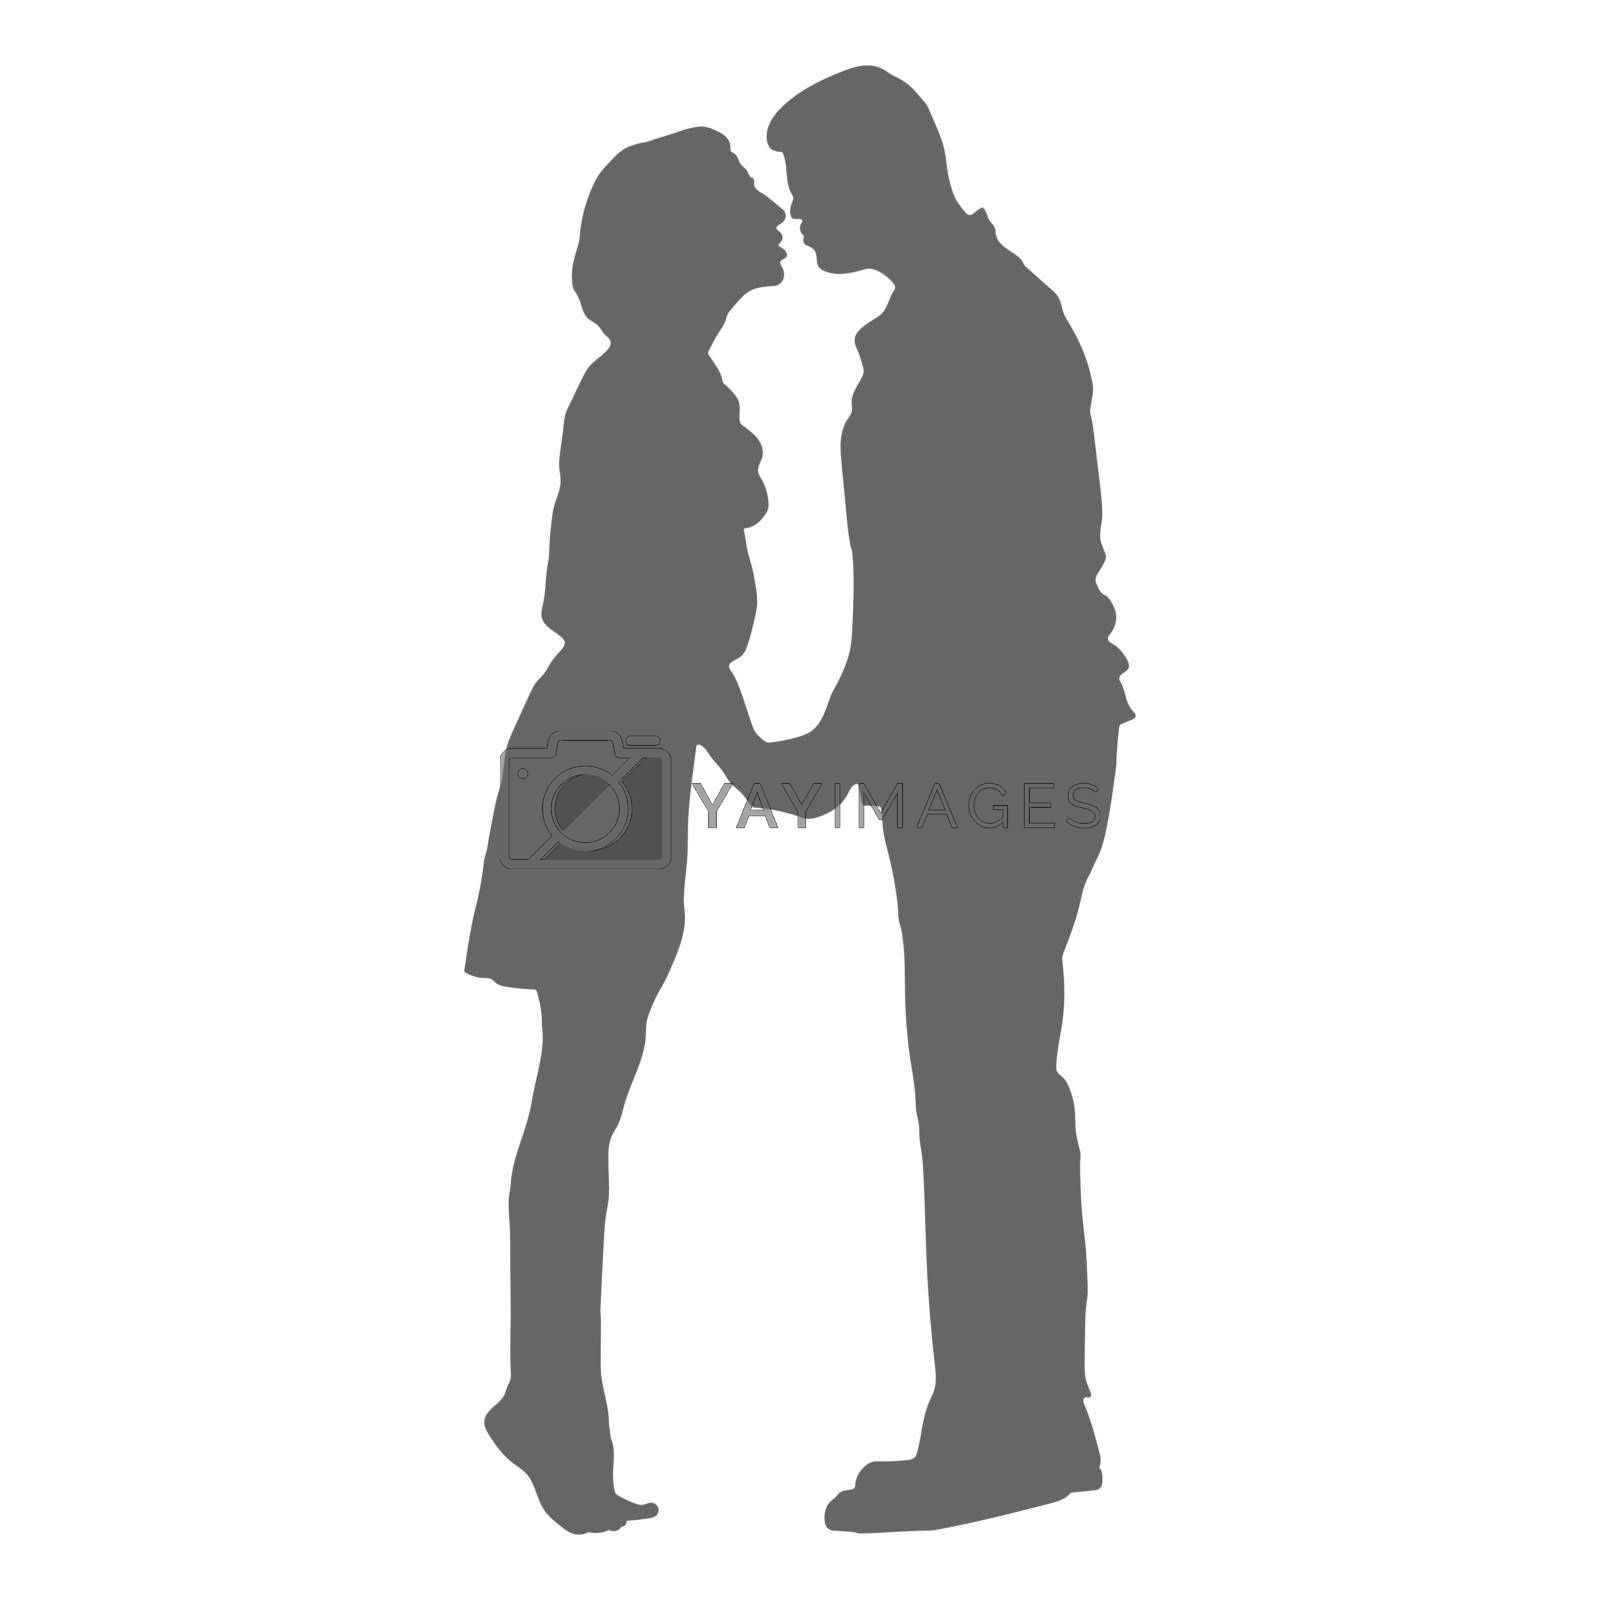 A filled silhouette of a couple in love. Silhouette of a man and a woman for creative design. Simple Style